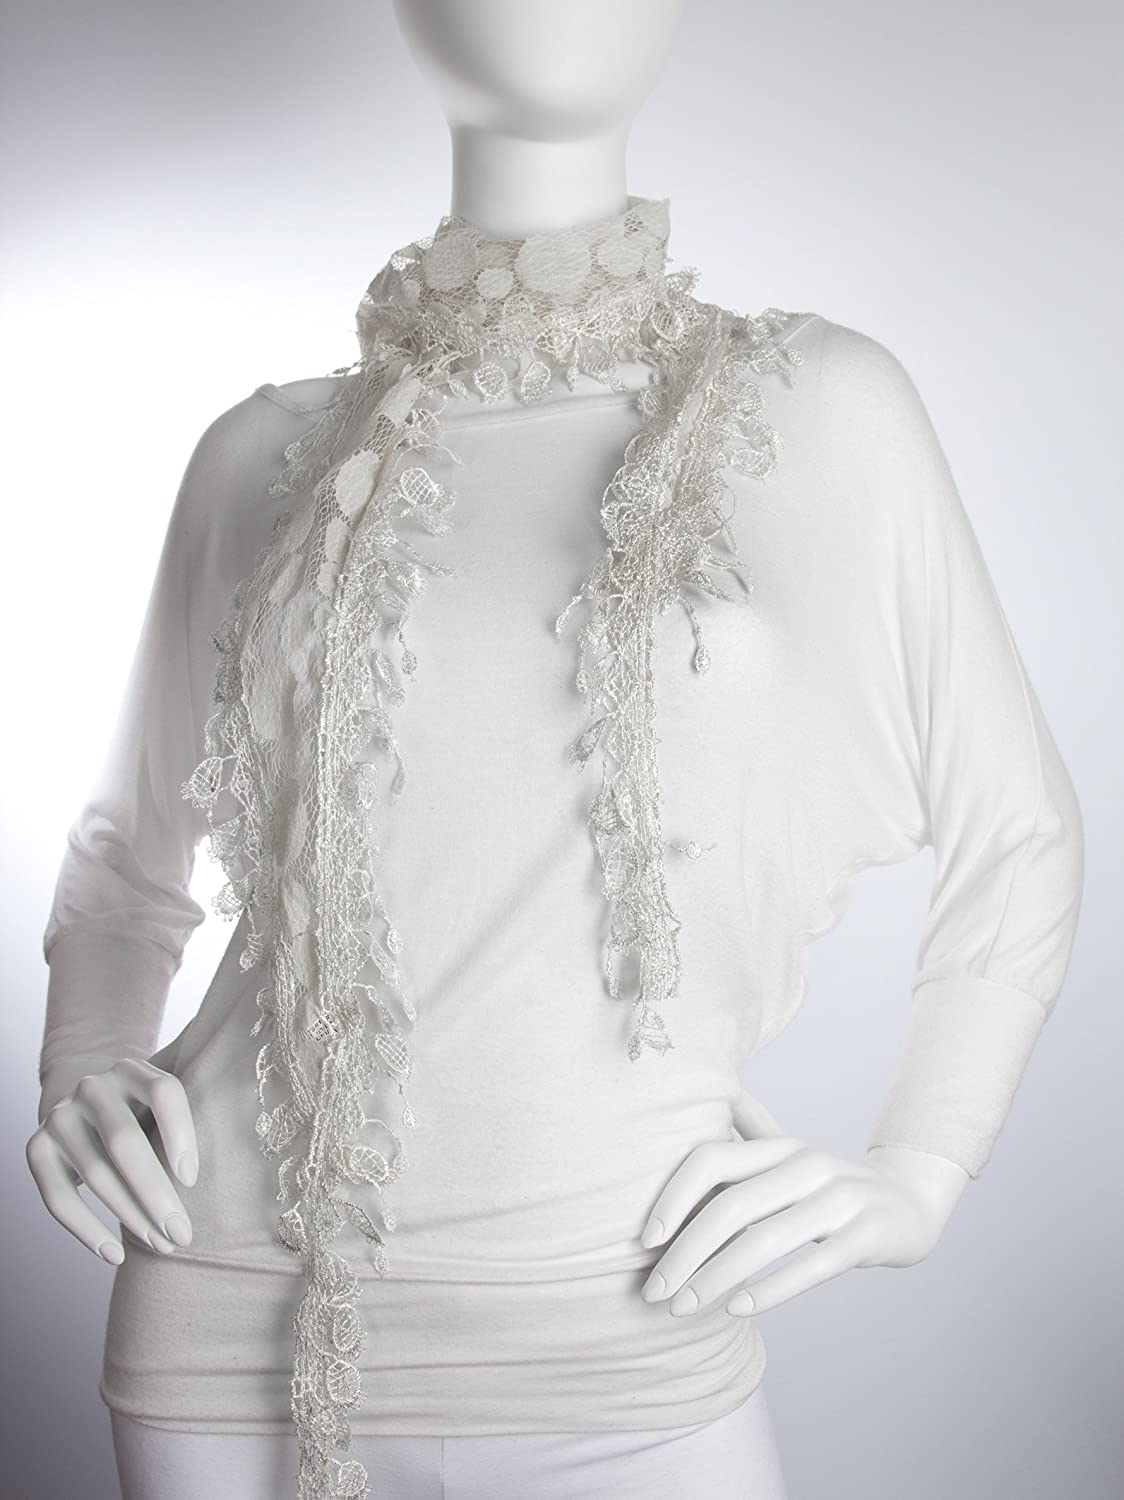 1920s Style Shawls, Wraps, Scarves Bohomonde April Scarf Polka-dot Lace net scarf with crochet lace trim $14.95 AT vintagedancer.com